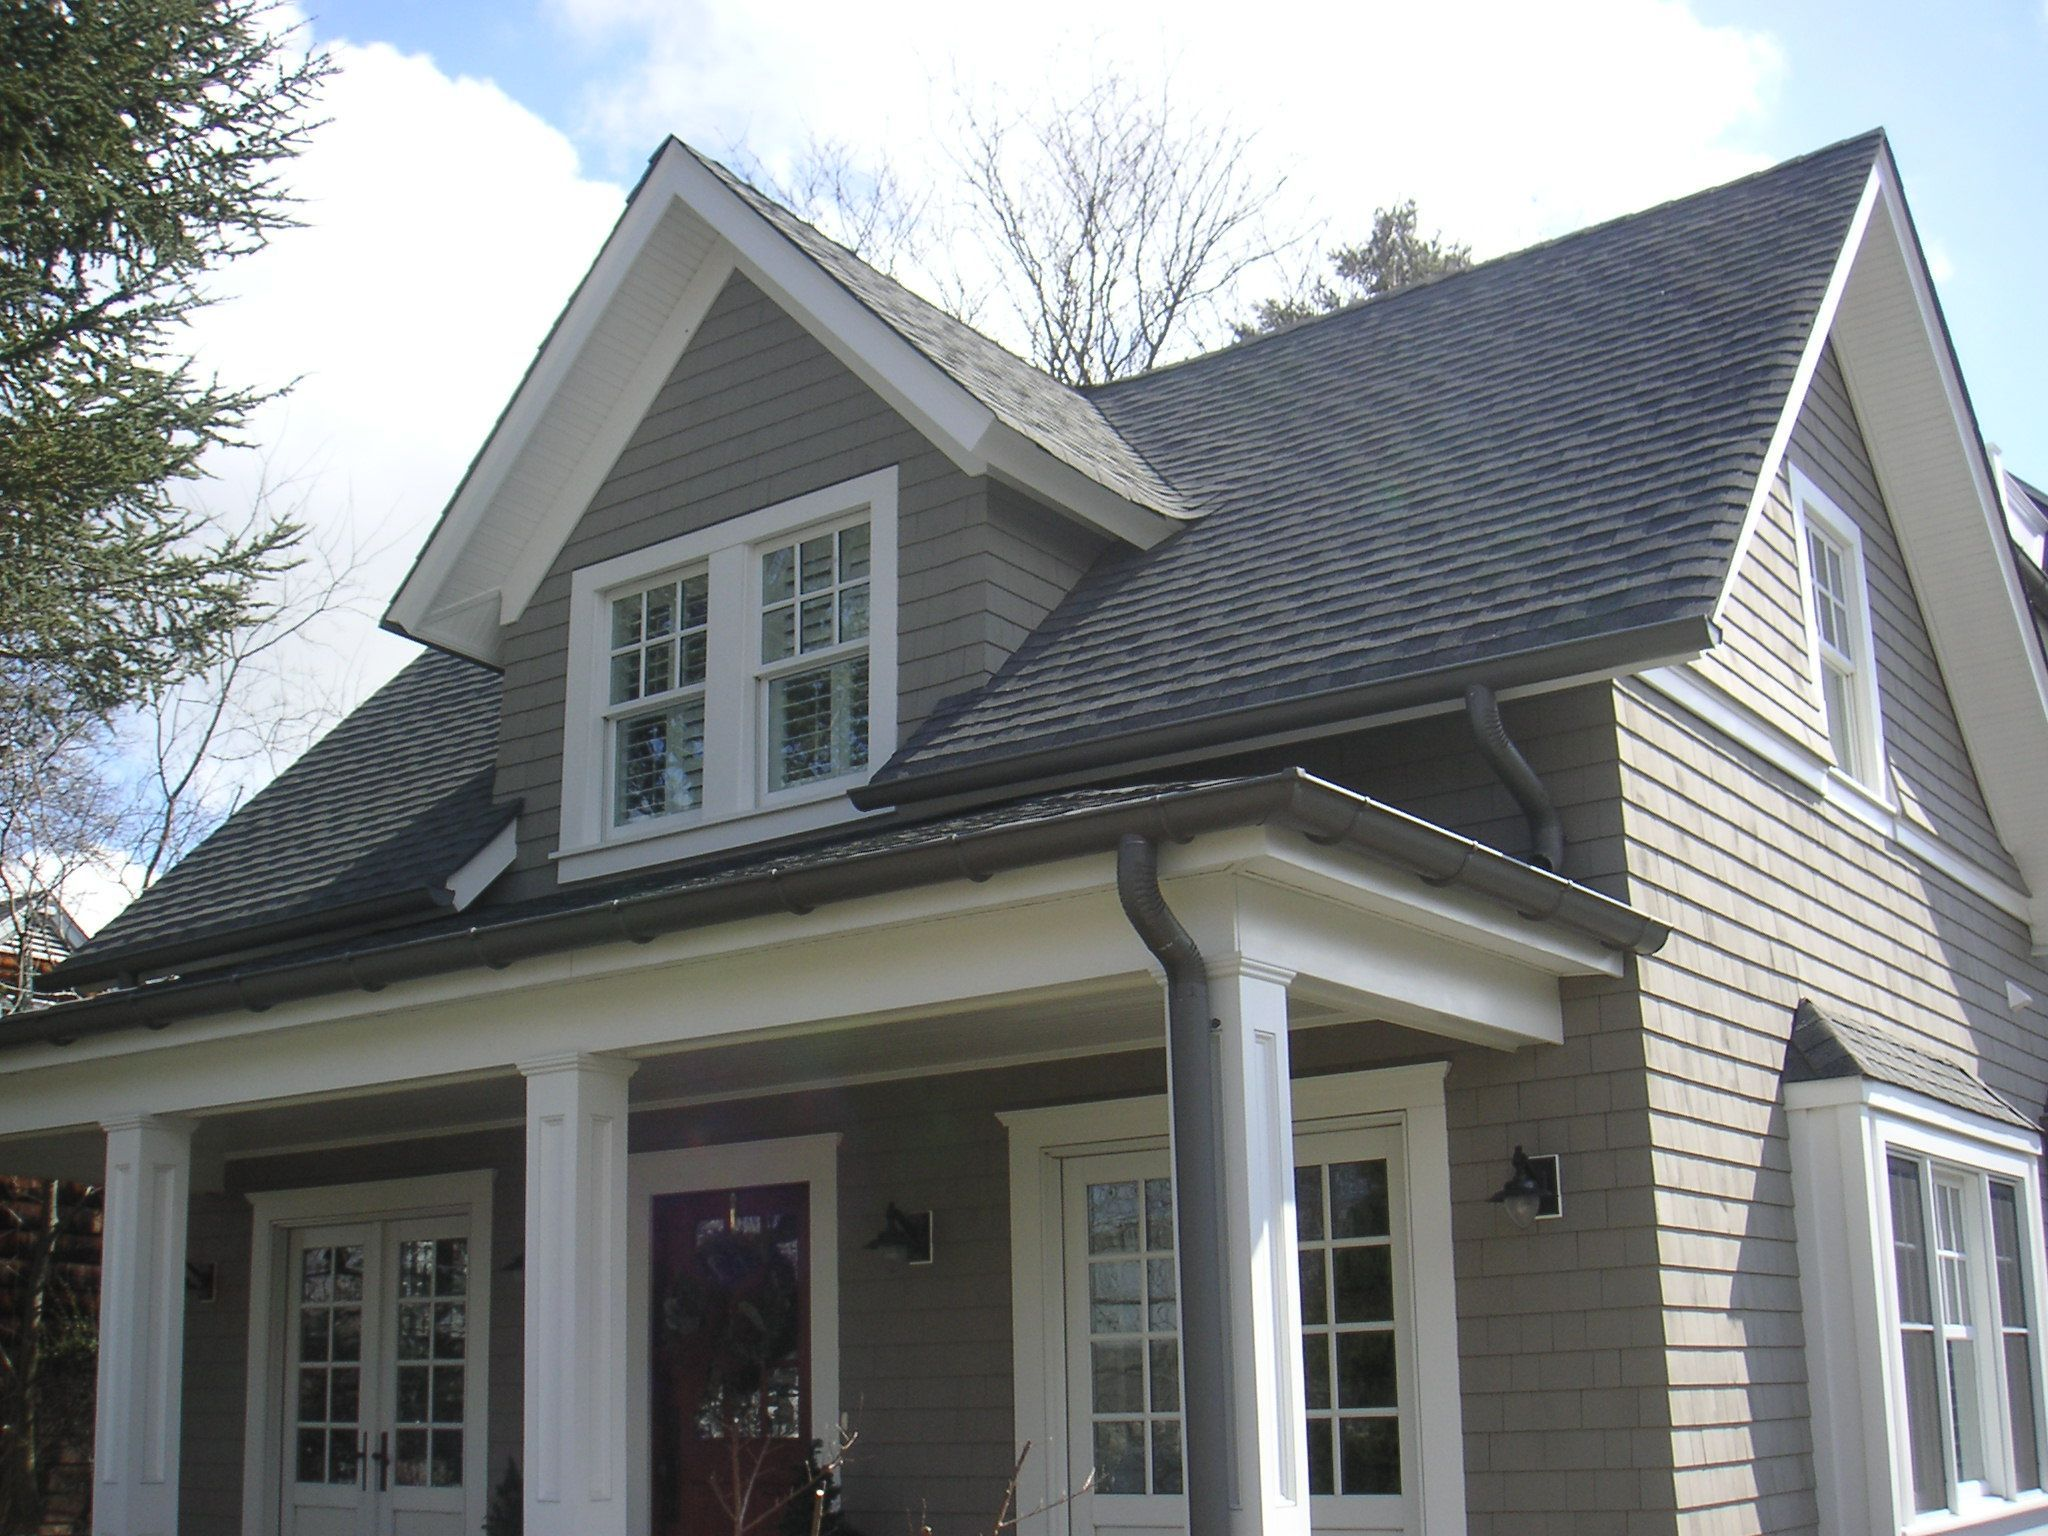 Inspiring Bronze Gutters 2 Gray House With Bronze Gutters Gray House Exterior House Exterior Grey Houses